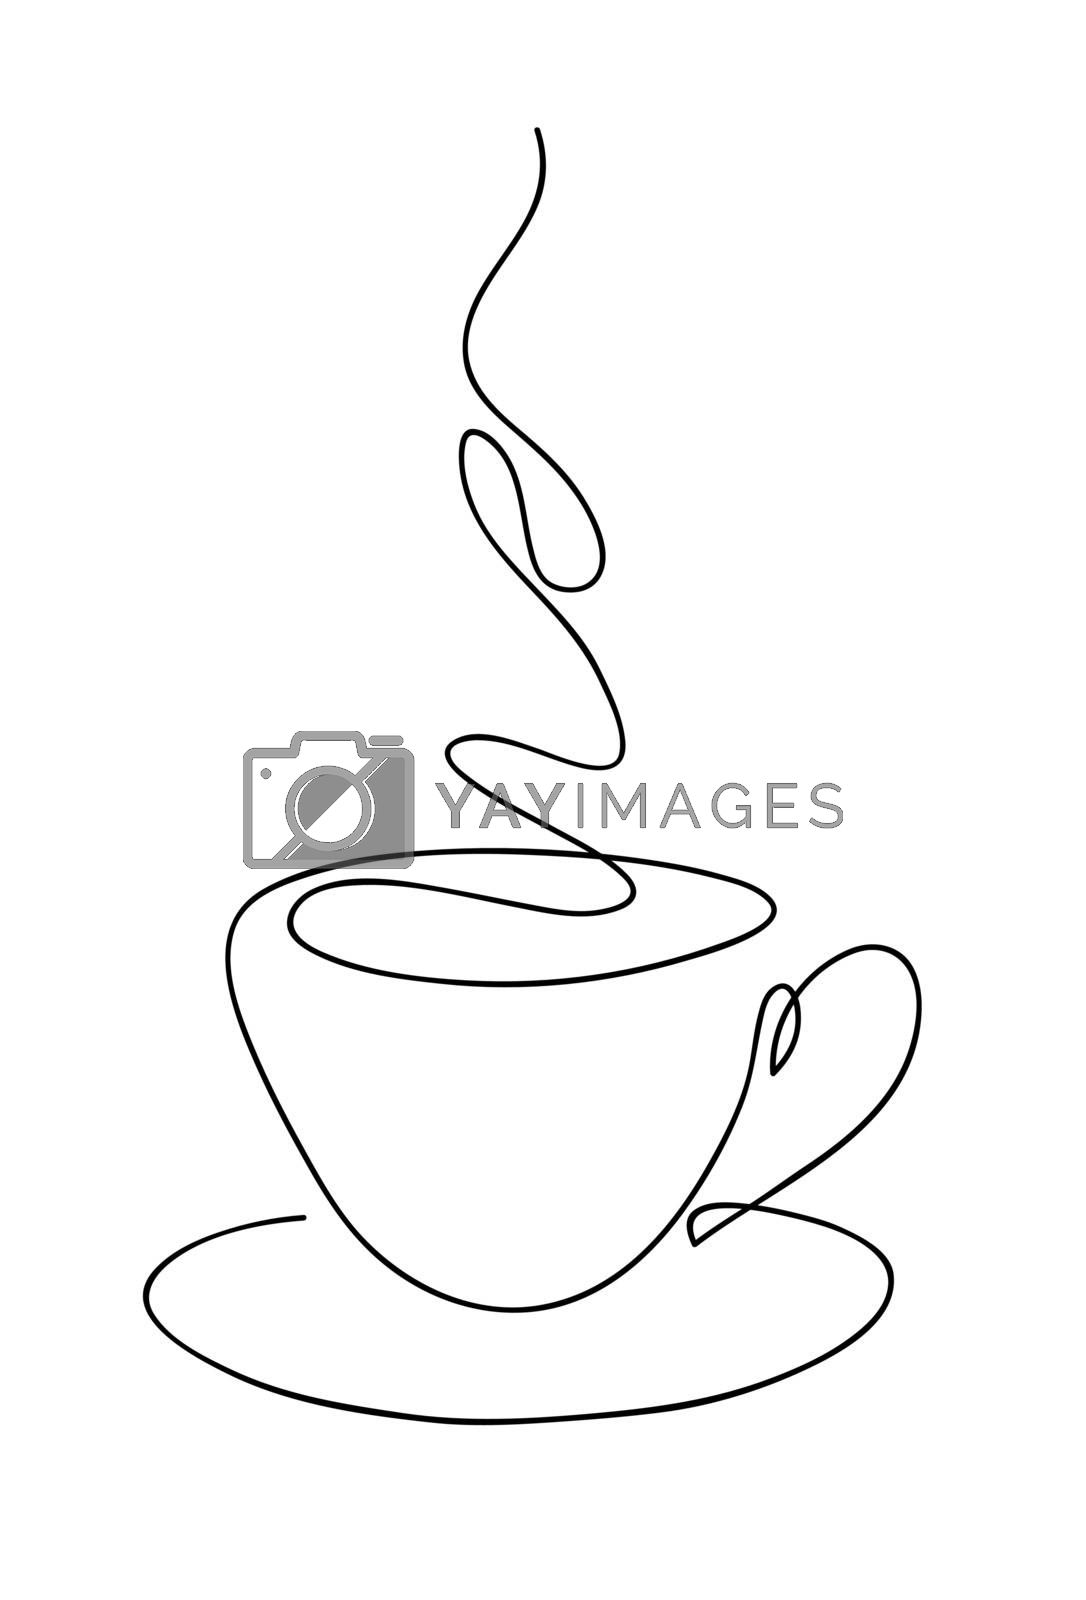 Cup cup of coffee continuous line art hand drawing. Coffee house logo. Outline style drawn sketch vector illustration. by ESSL